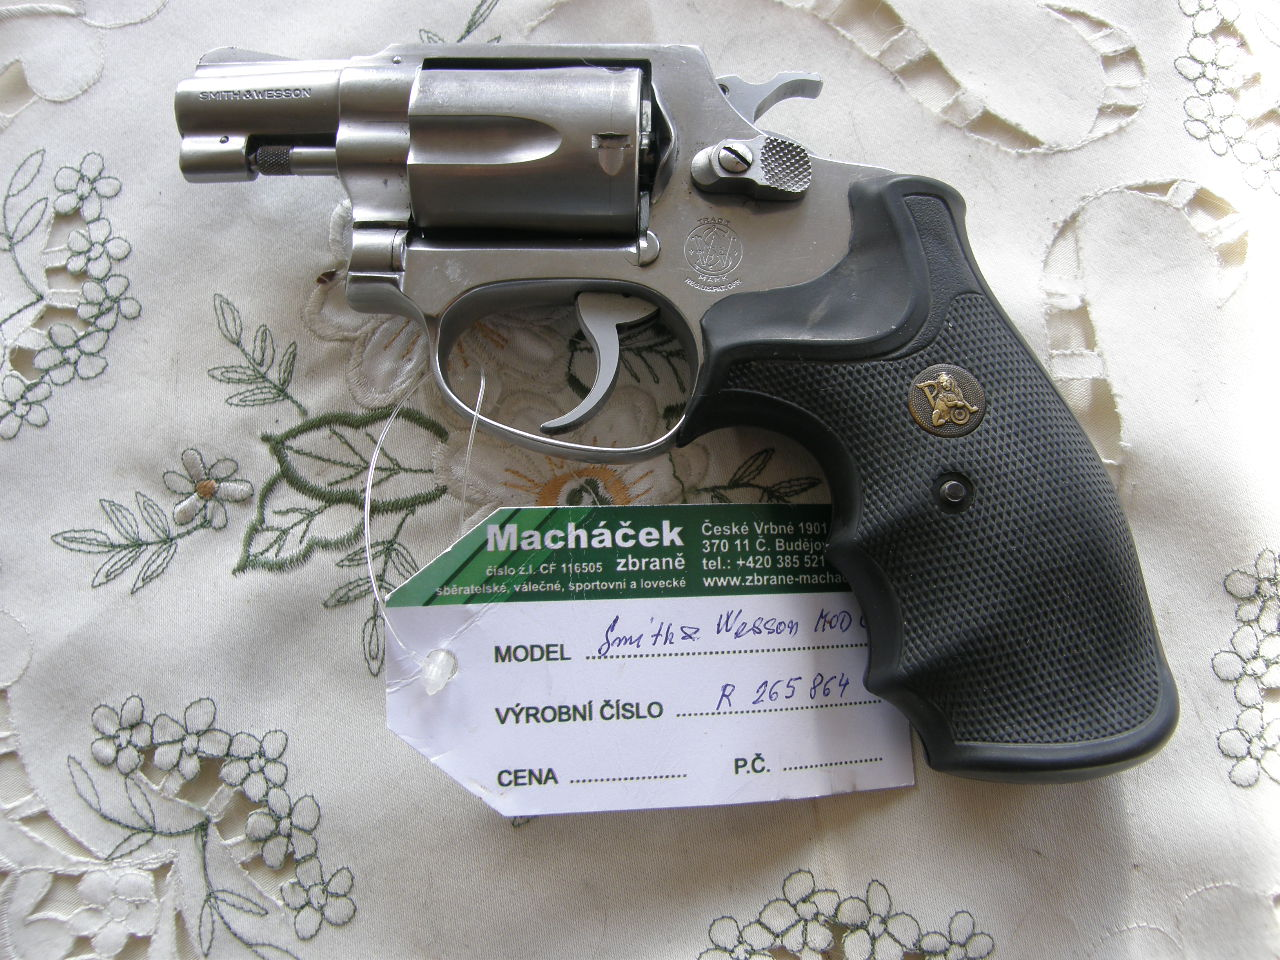 Revolver Smith Wesson Mod. 60 v.č.R265864 r. 38 Sp.